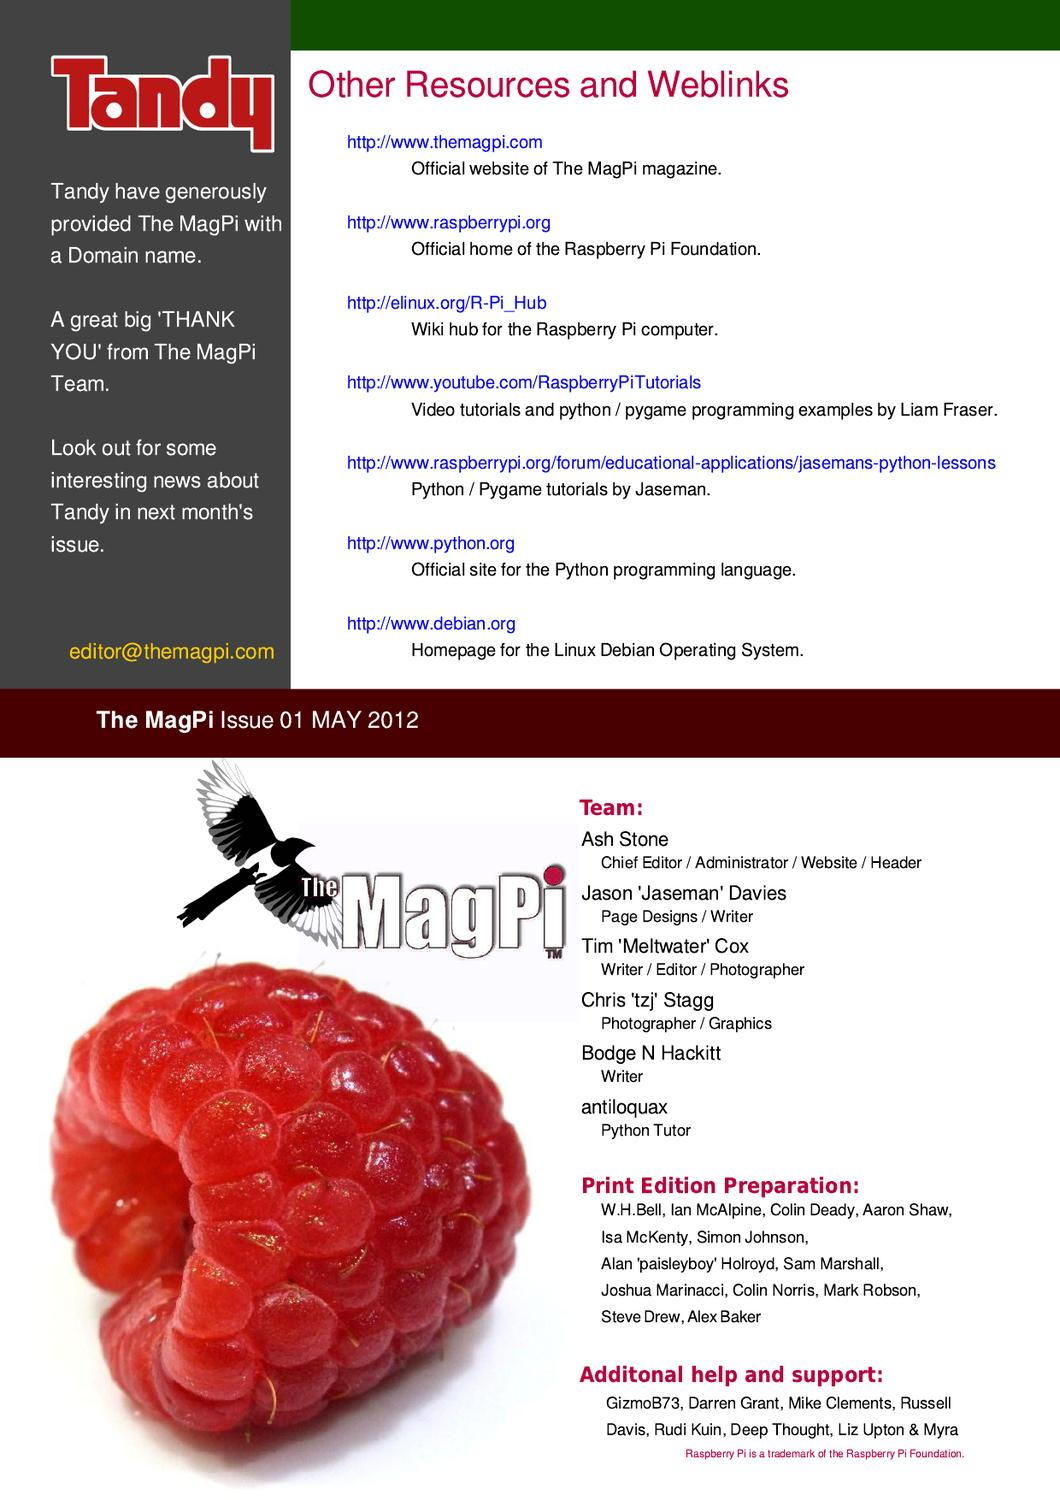 The MagPi Issue 1 by The MagPi - issuu